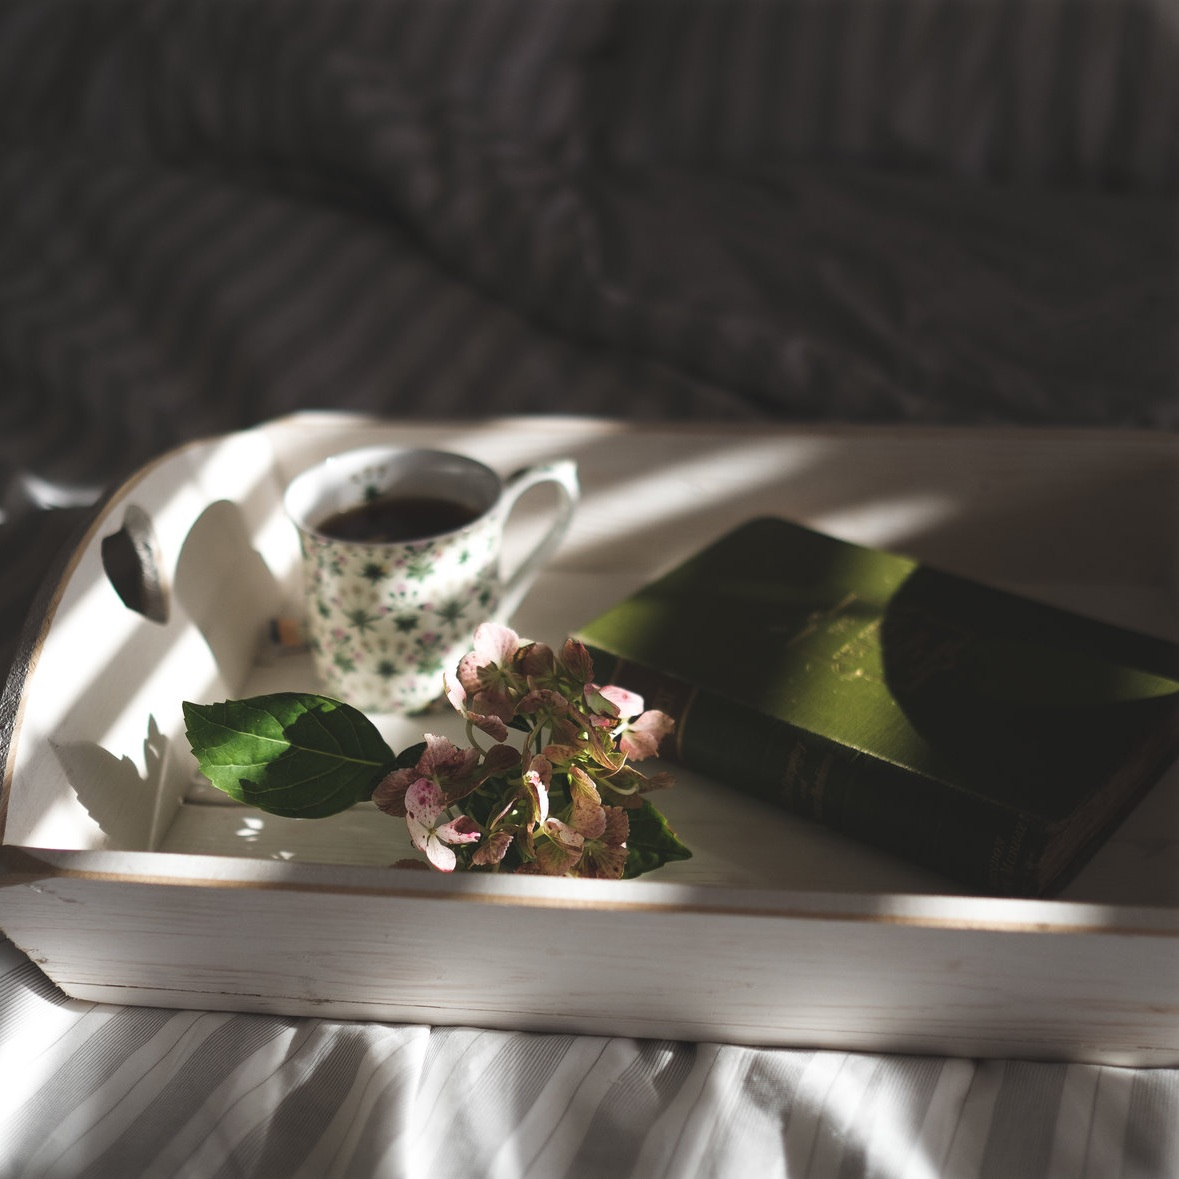 3 Simple Self-Love Practices to Embrace Today. Read more from Holl & Lane Magazine at hollandlanemag.com/blog